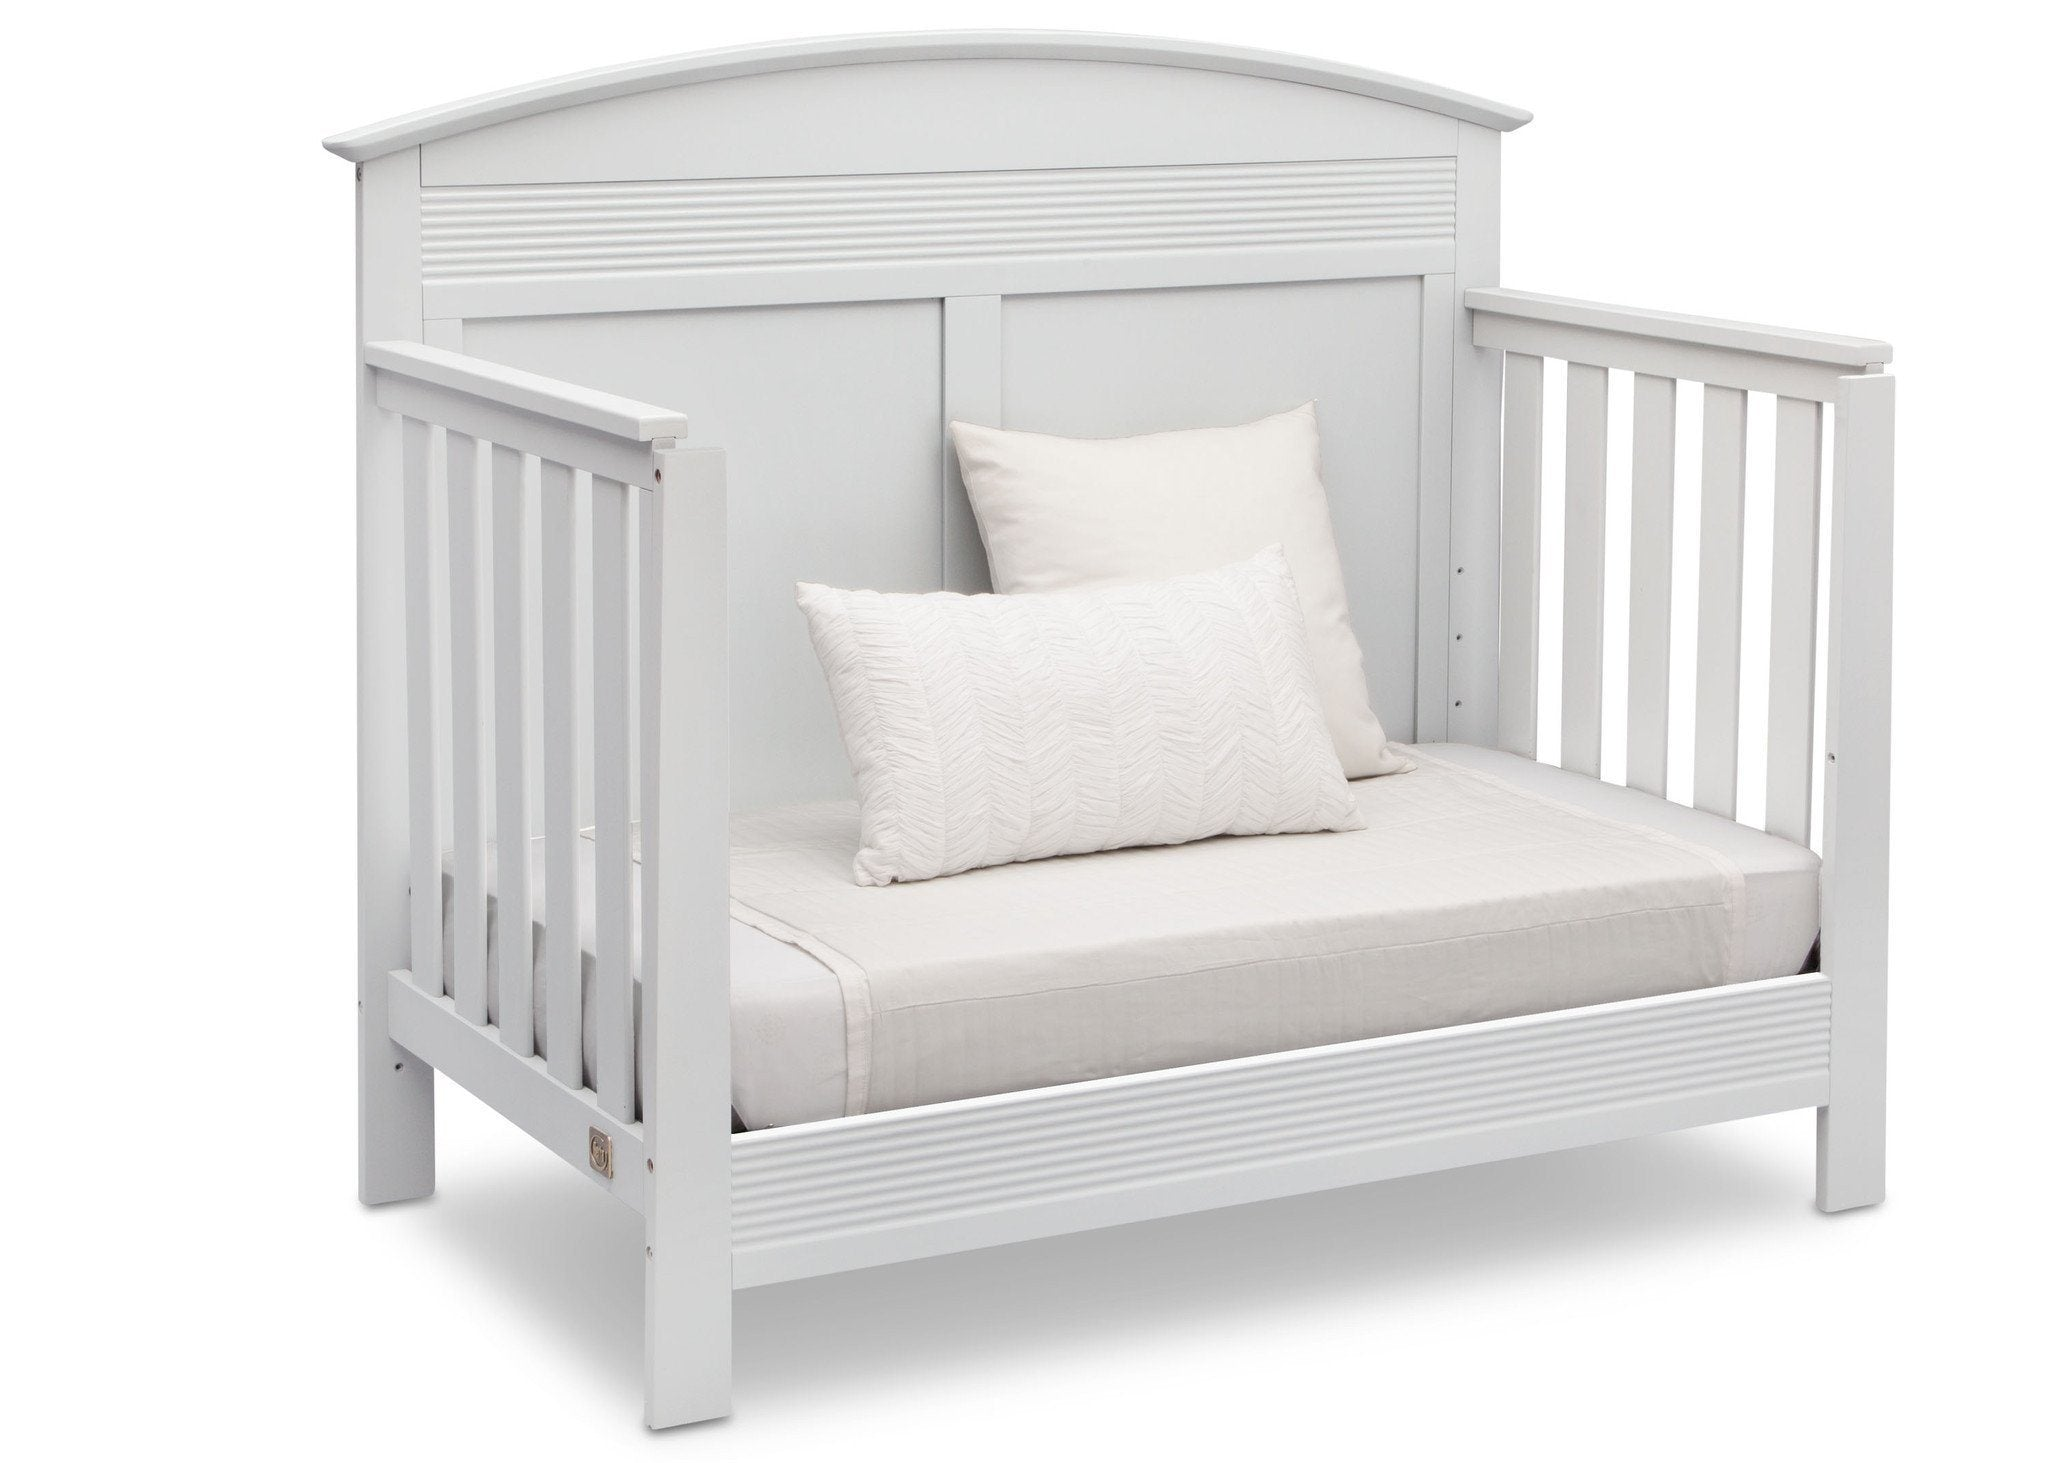 Serta Bianca White (130) Ashland 4-in-1 Convertible Crib, Right Day Bed View b4b